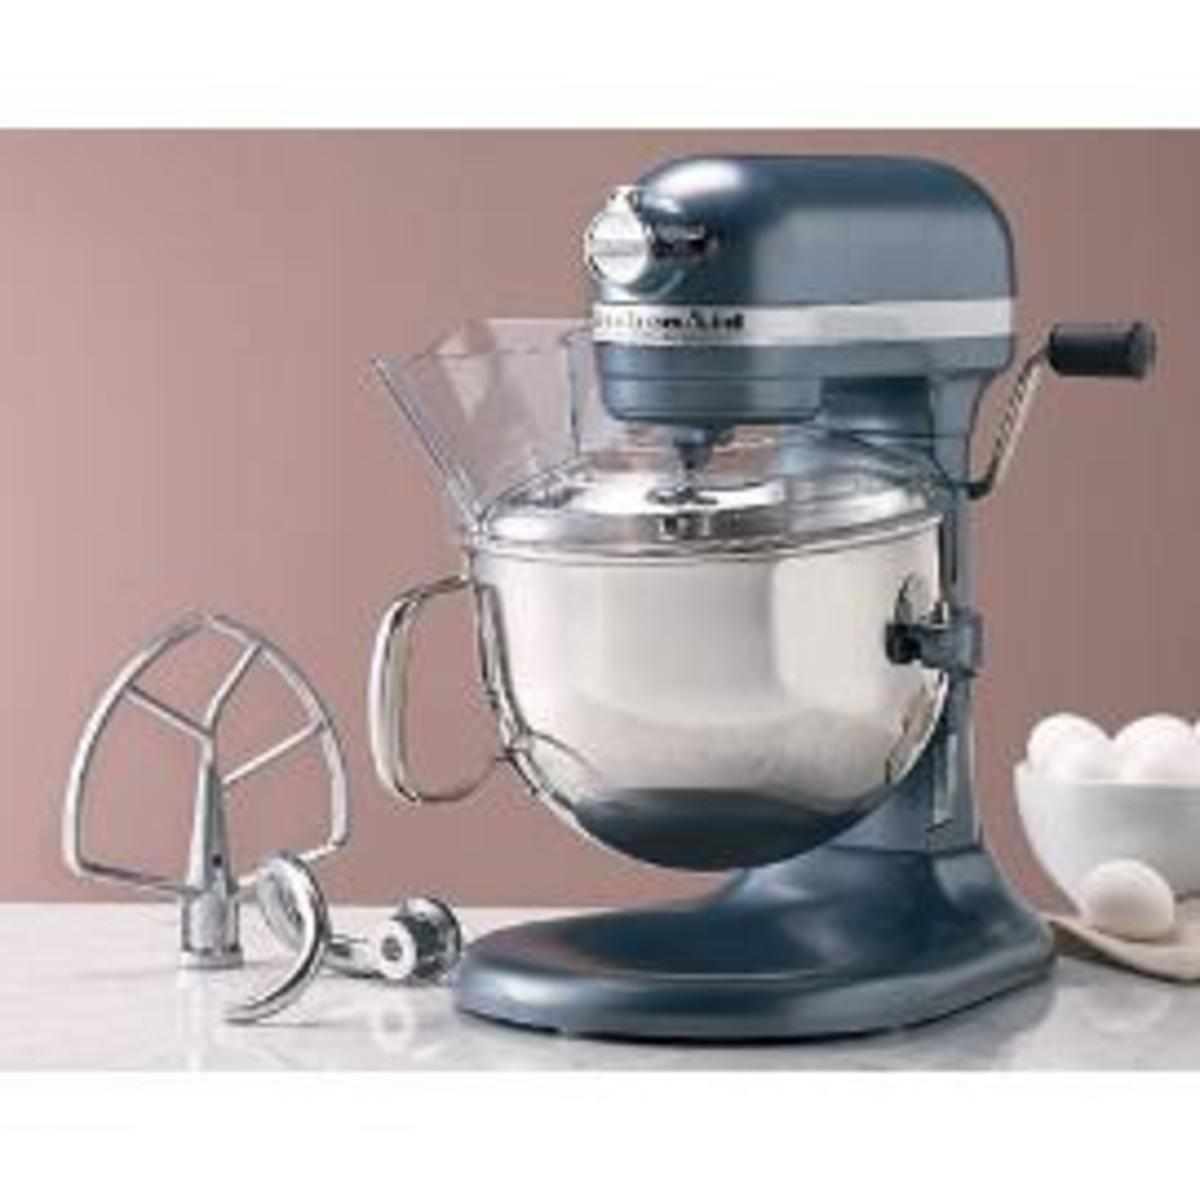 KitchenAid 600 Series in blue